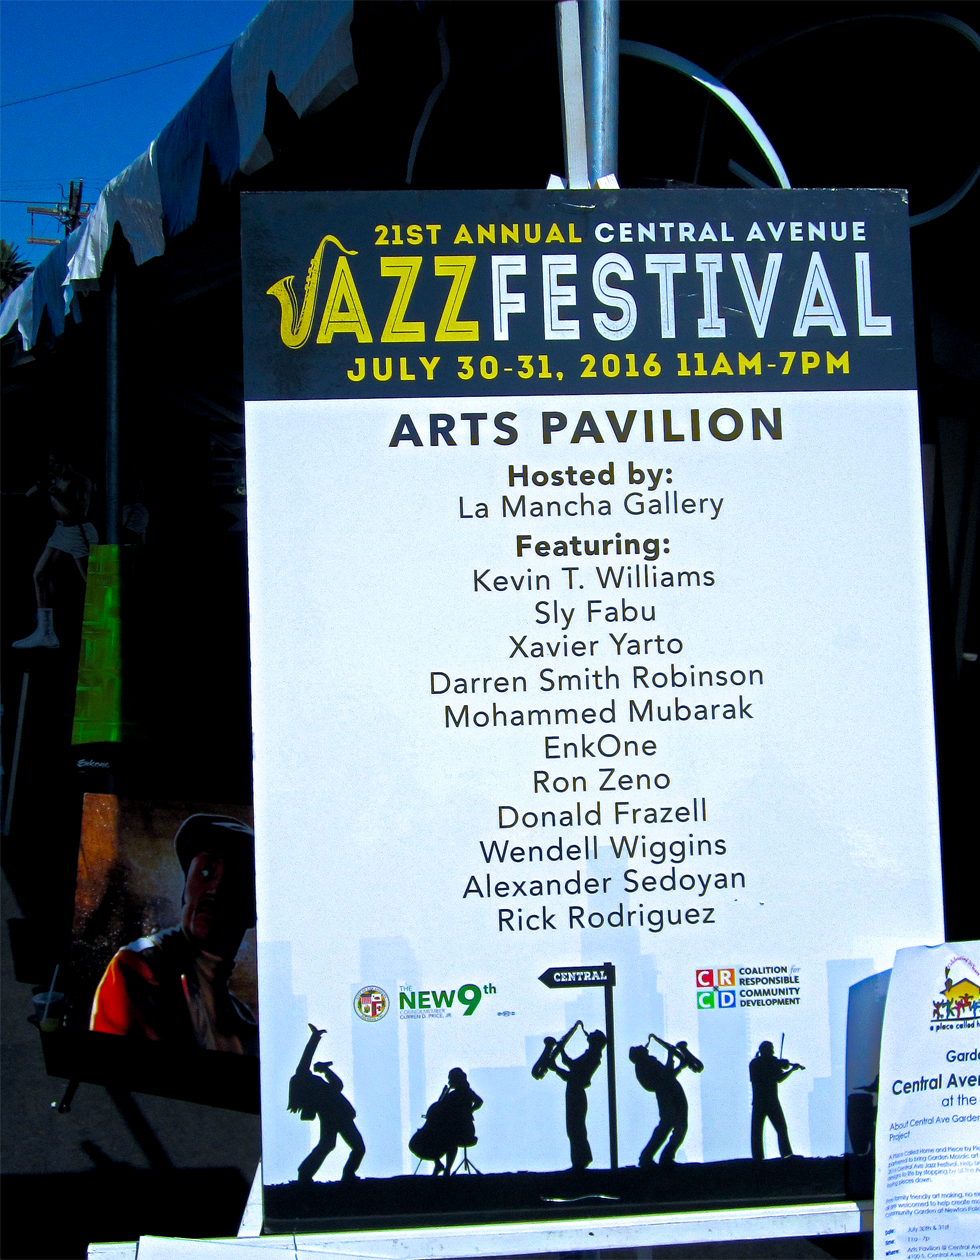 21st Central Avenue Jazz Festival Arts Pavilion 980x1260